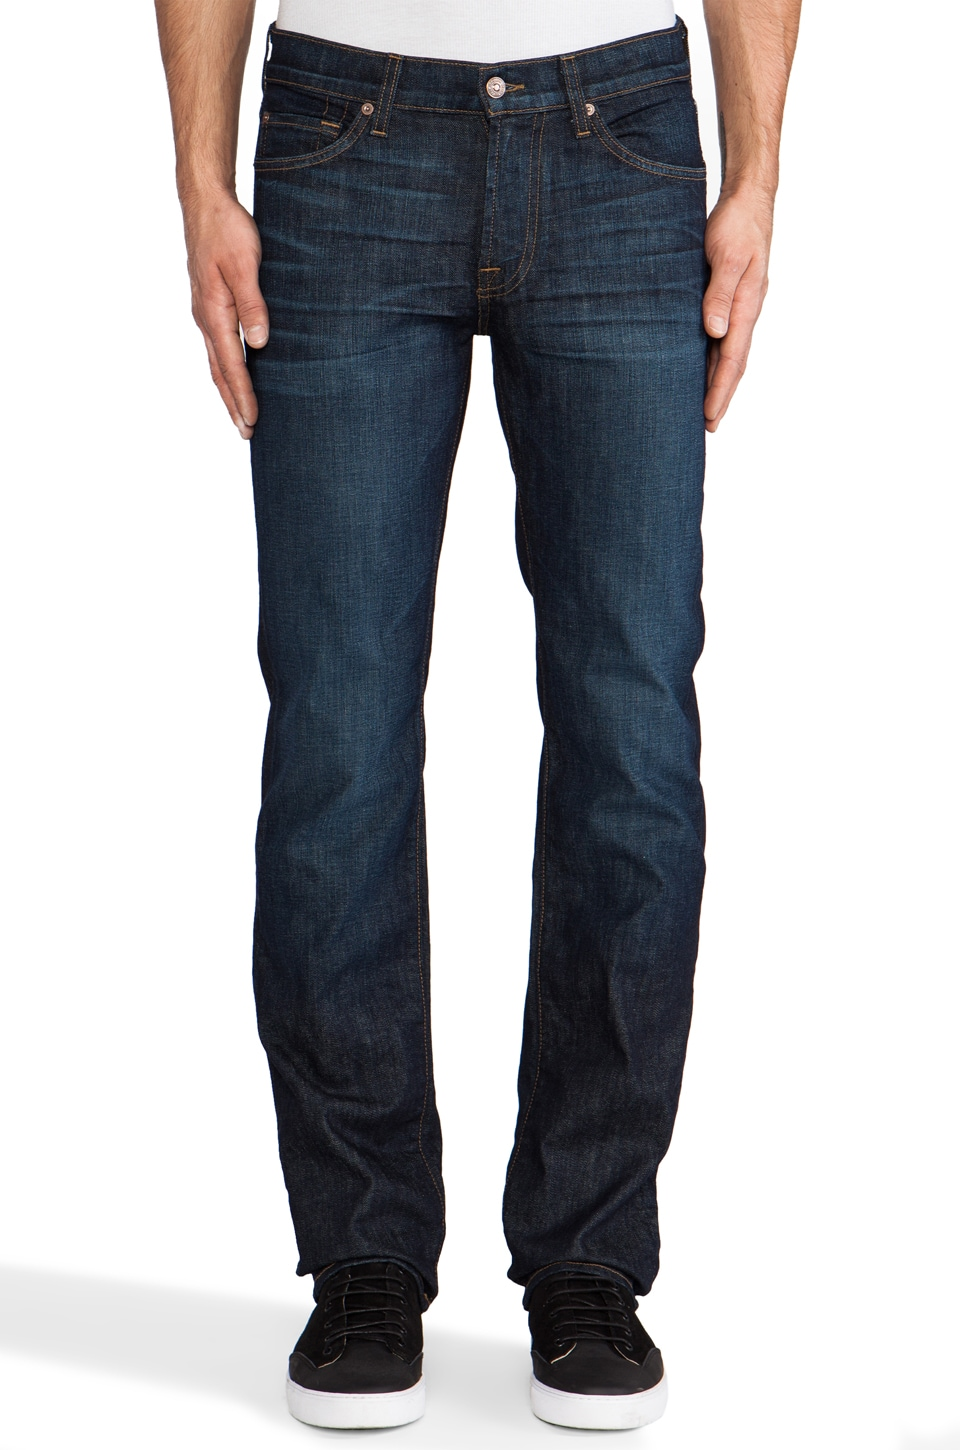 7 For All Mankind Slimmy in Monaco Blue